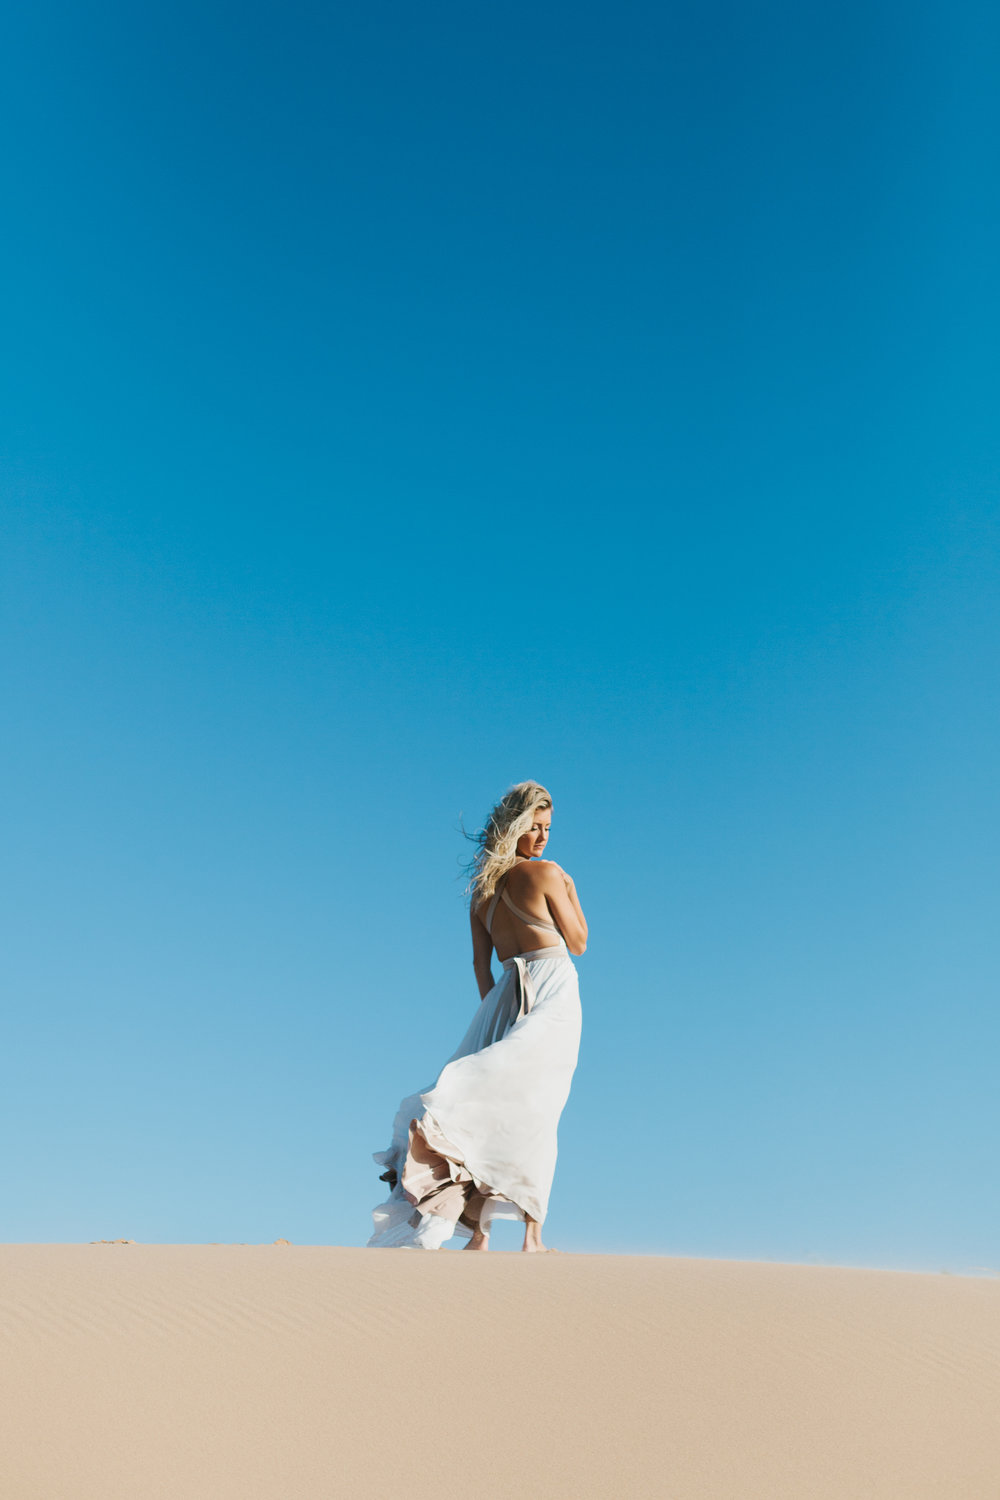 Sleeping Bear Dunes Bridal Portraits Wedding Photographer Mae Stier-046.jpg